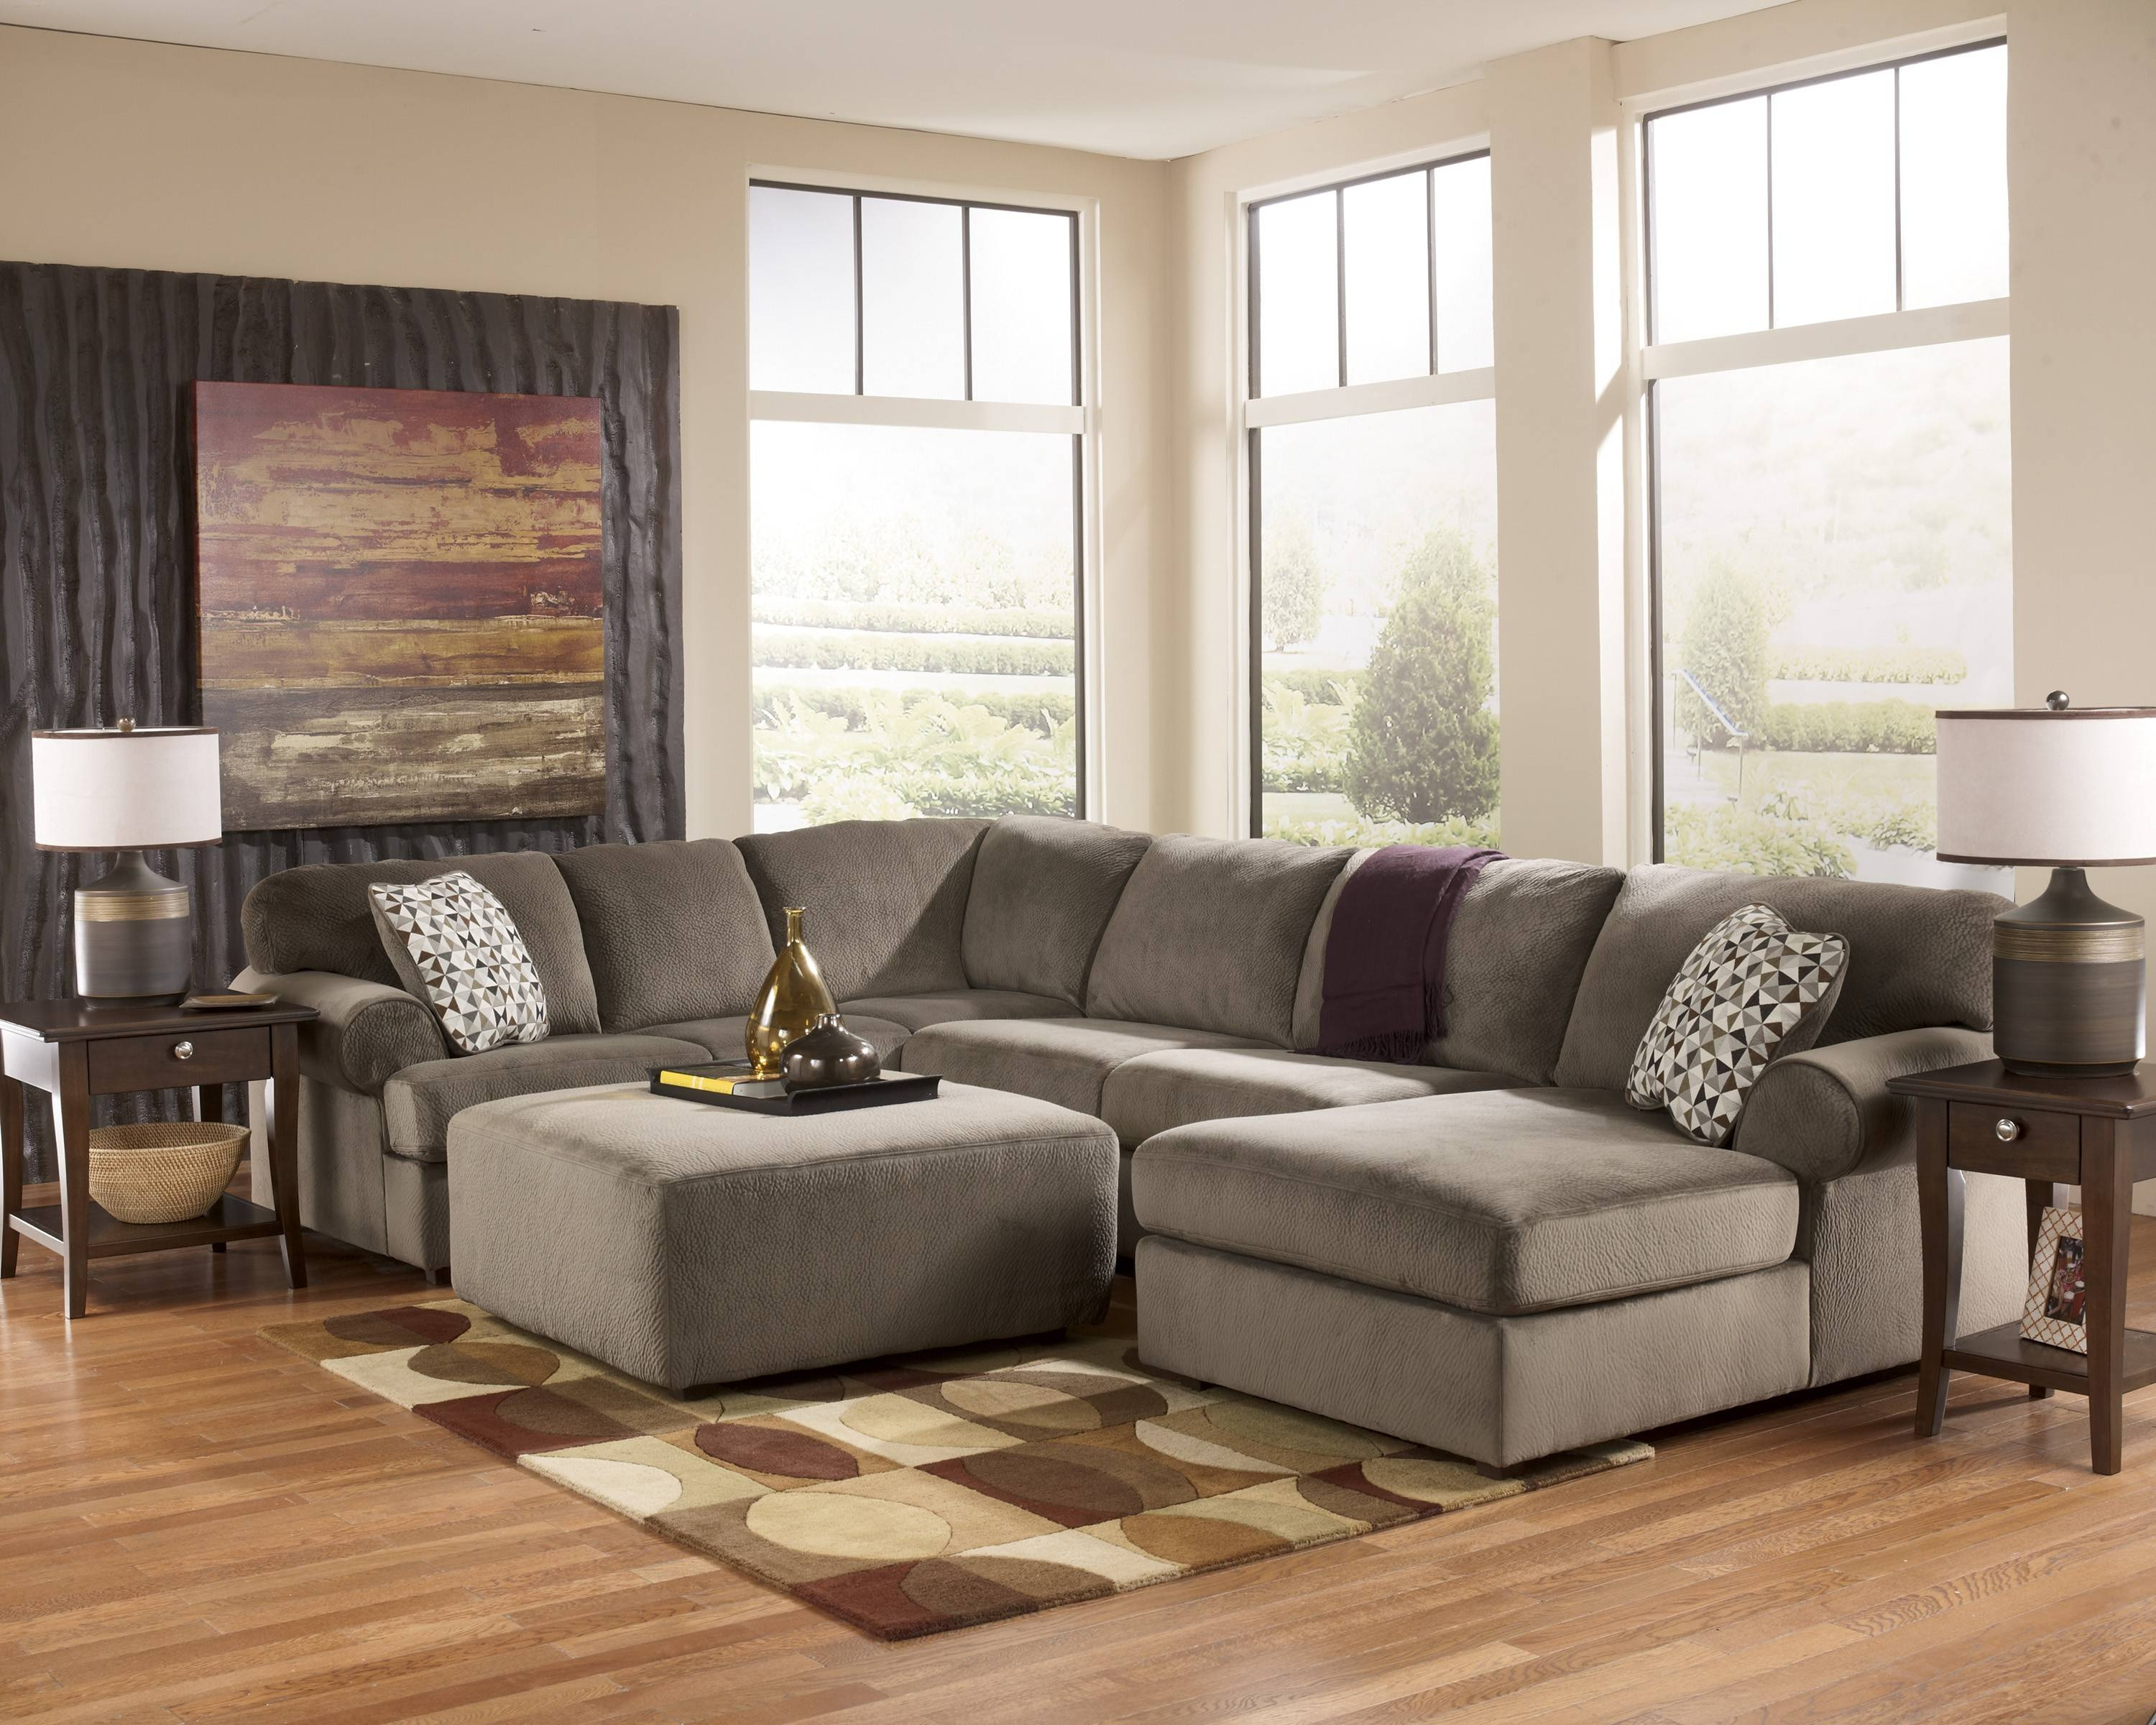 Sofas: Sectional Sofas On Sale | Oversized Sofas | Ashley Intended For Sectional Sofas Ashley Furniture (View 15 of 15)